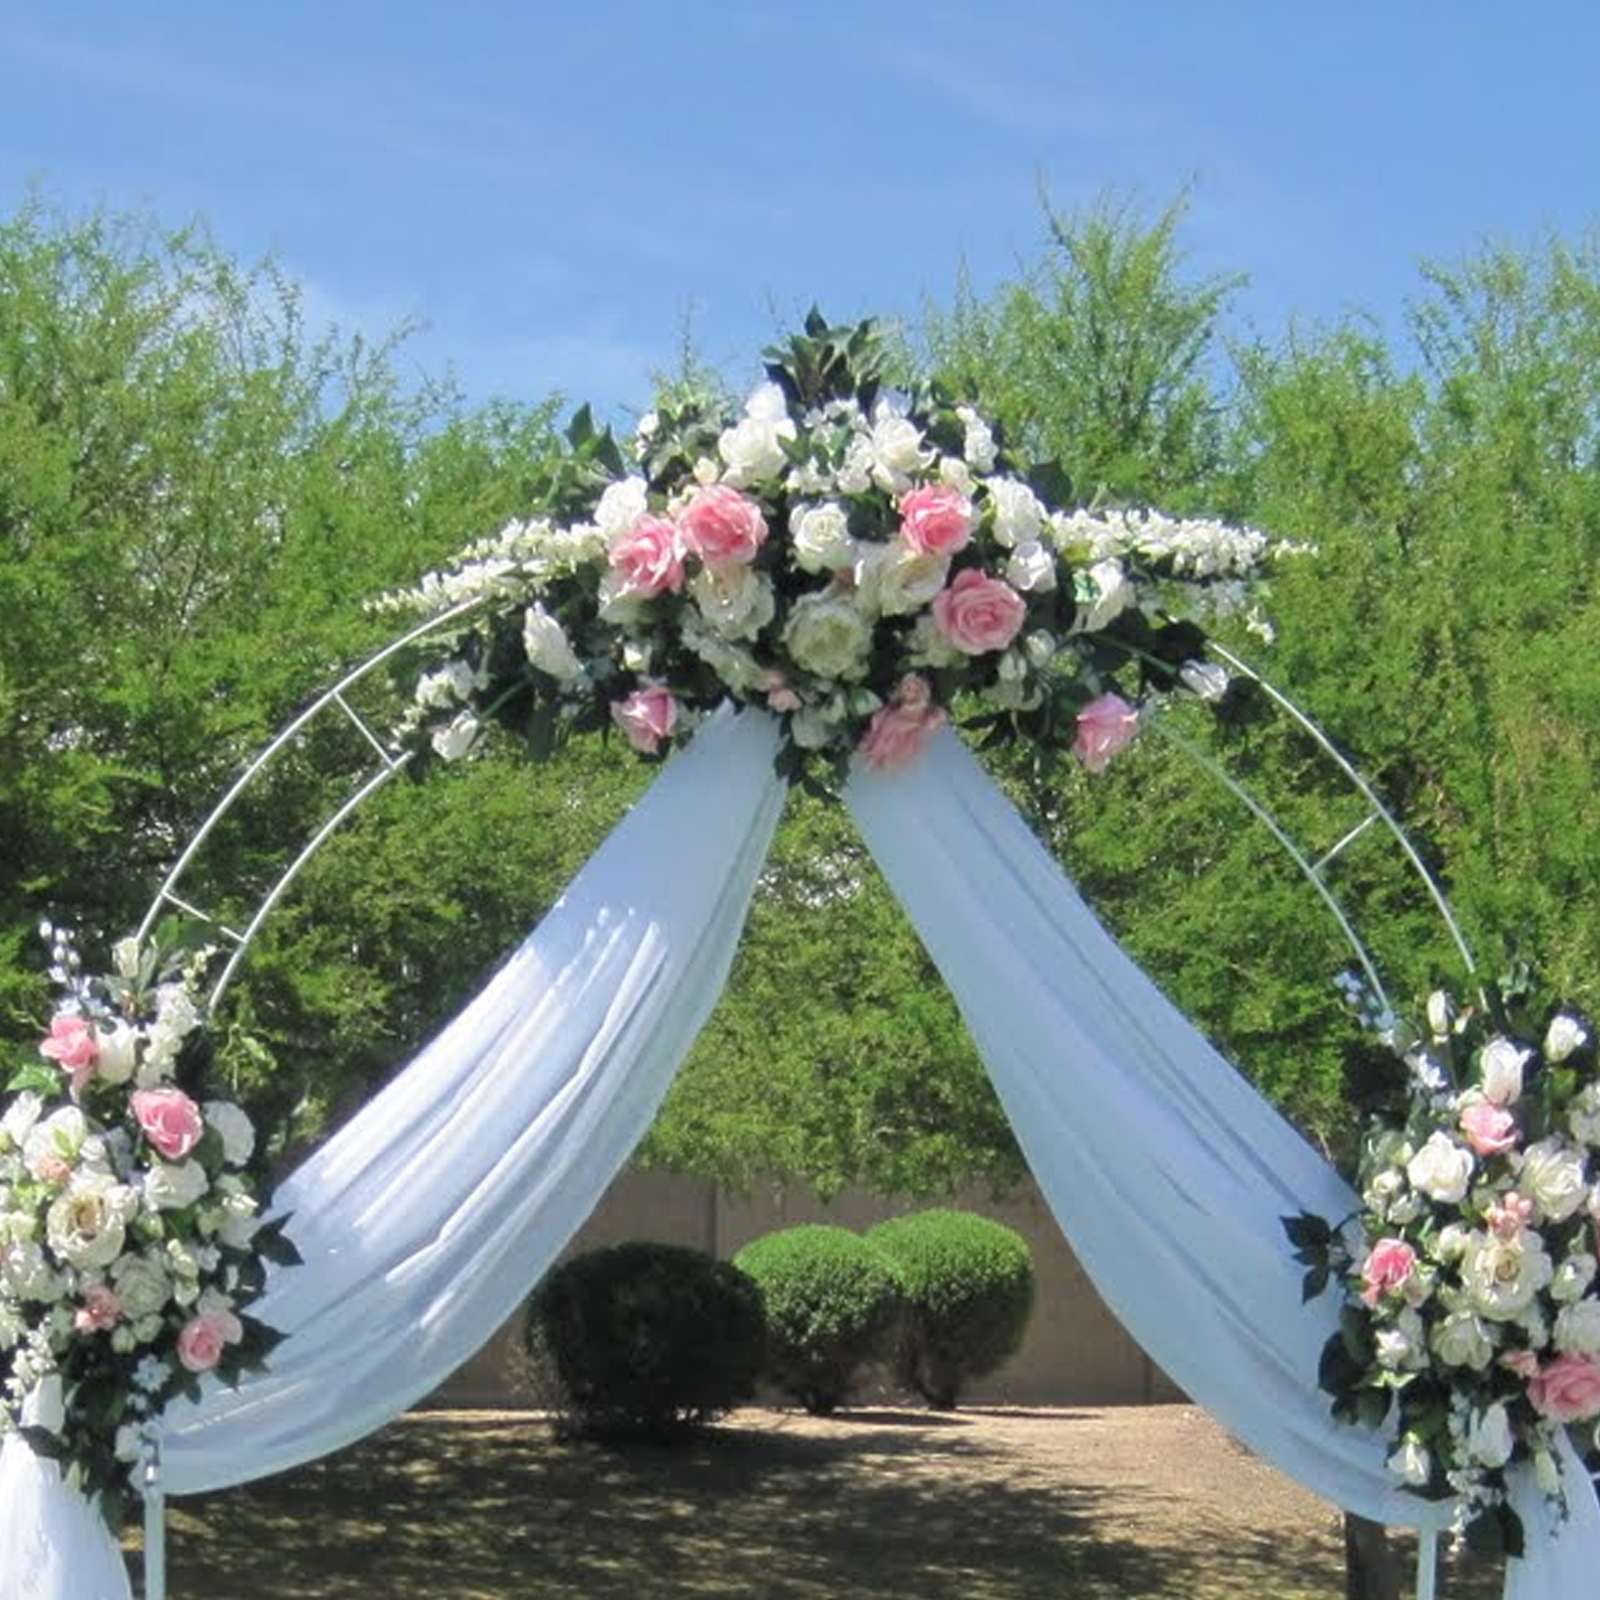 Wedding Arch Decoration Ideas: 7.5 Ft White Metal Tall Arch Wedding Garden Bridal Party